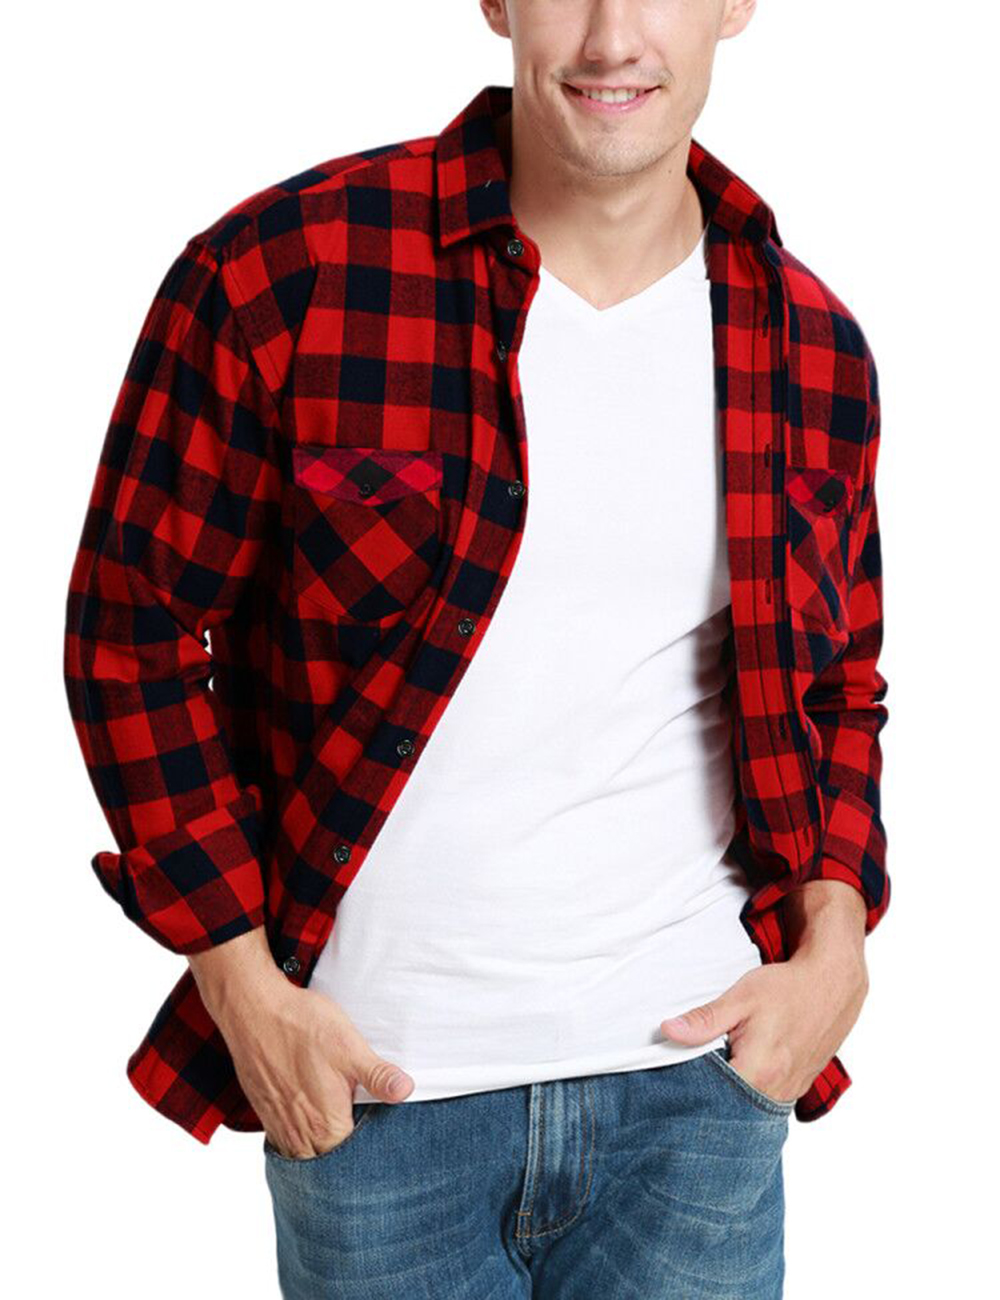 Dioufond Mens Pocket Flannel Plaid Cotton Shirt Long Sleeve Checkered Casual Slim Fit Black Warm Autumn Winter Shirts New